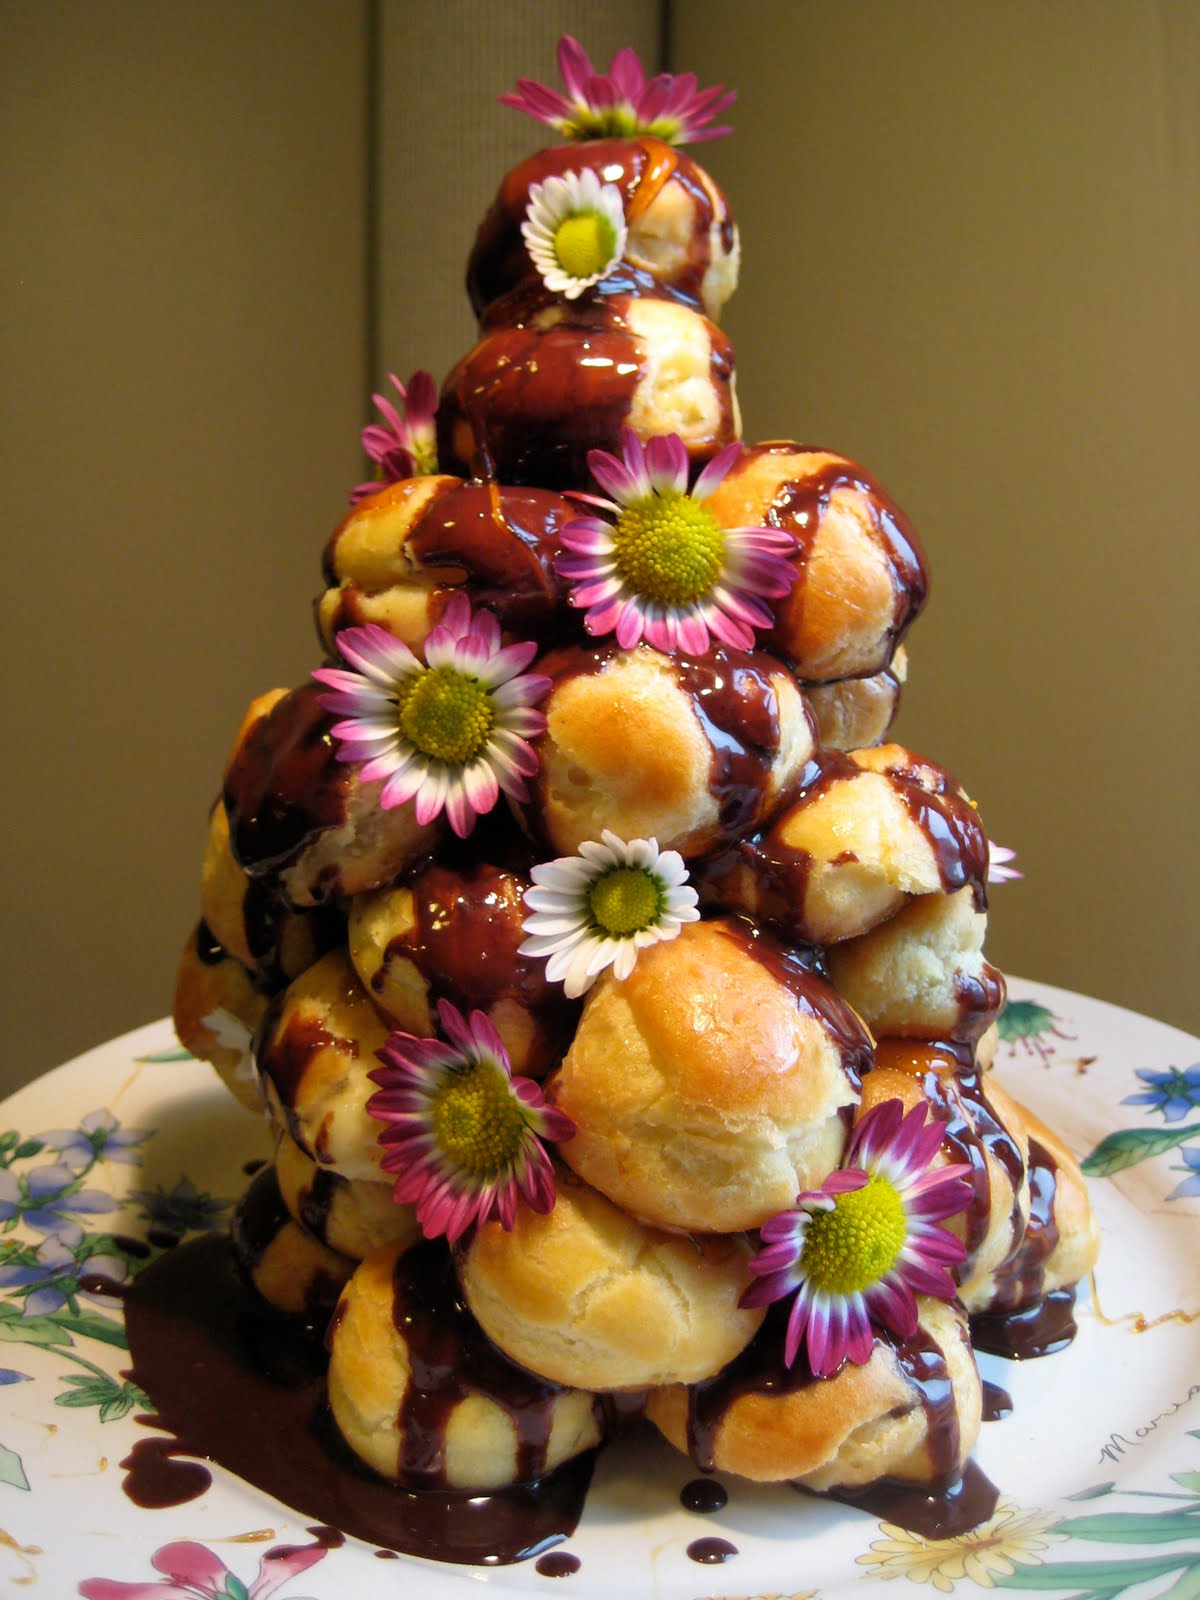 The Cupcake Life: Celebratory Cream Puff Tower